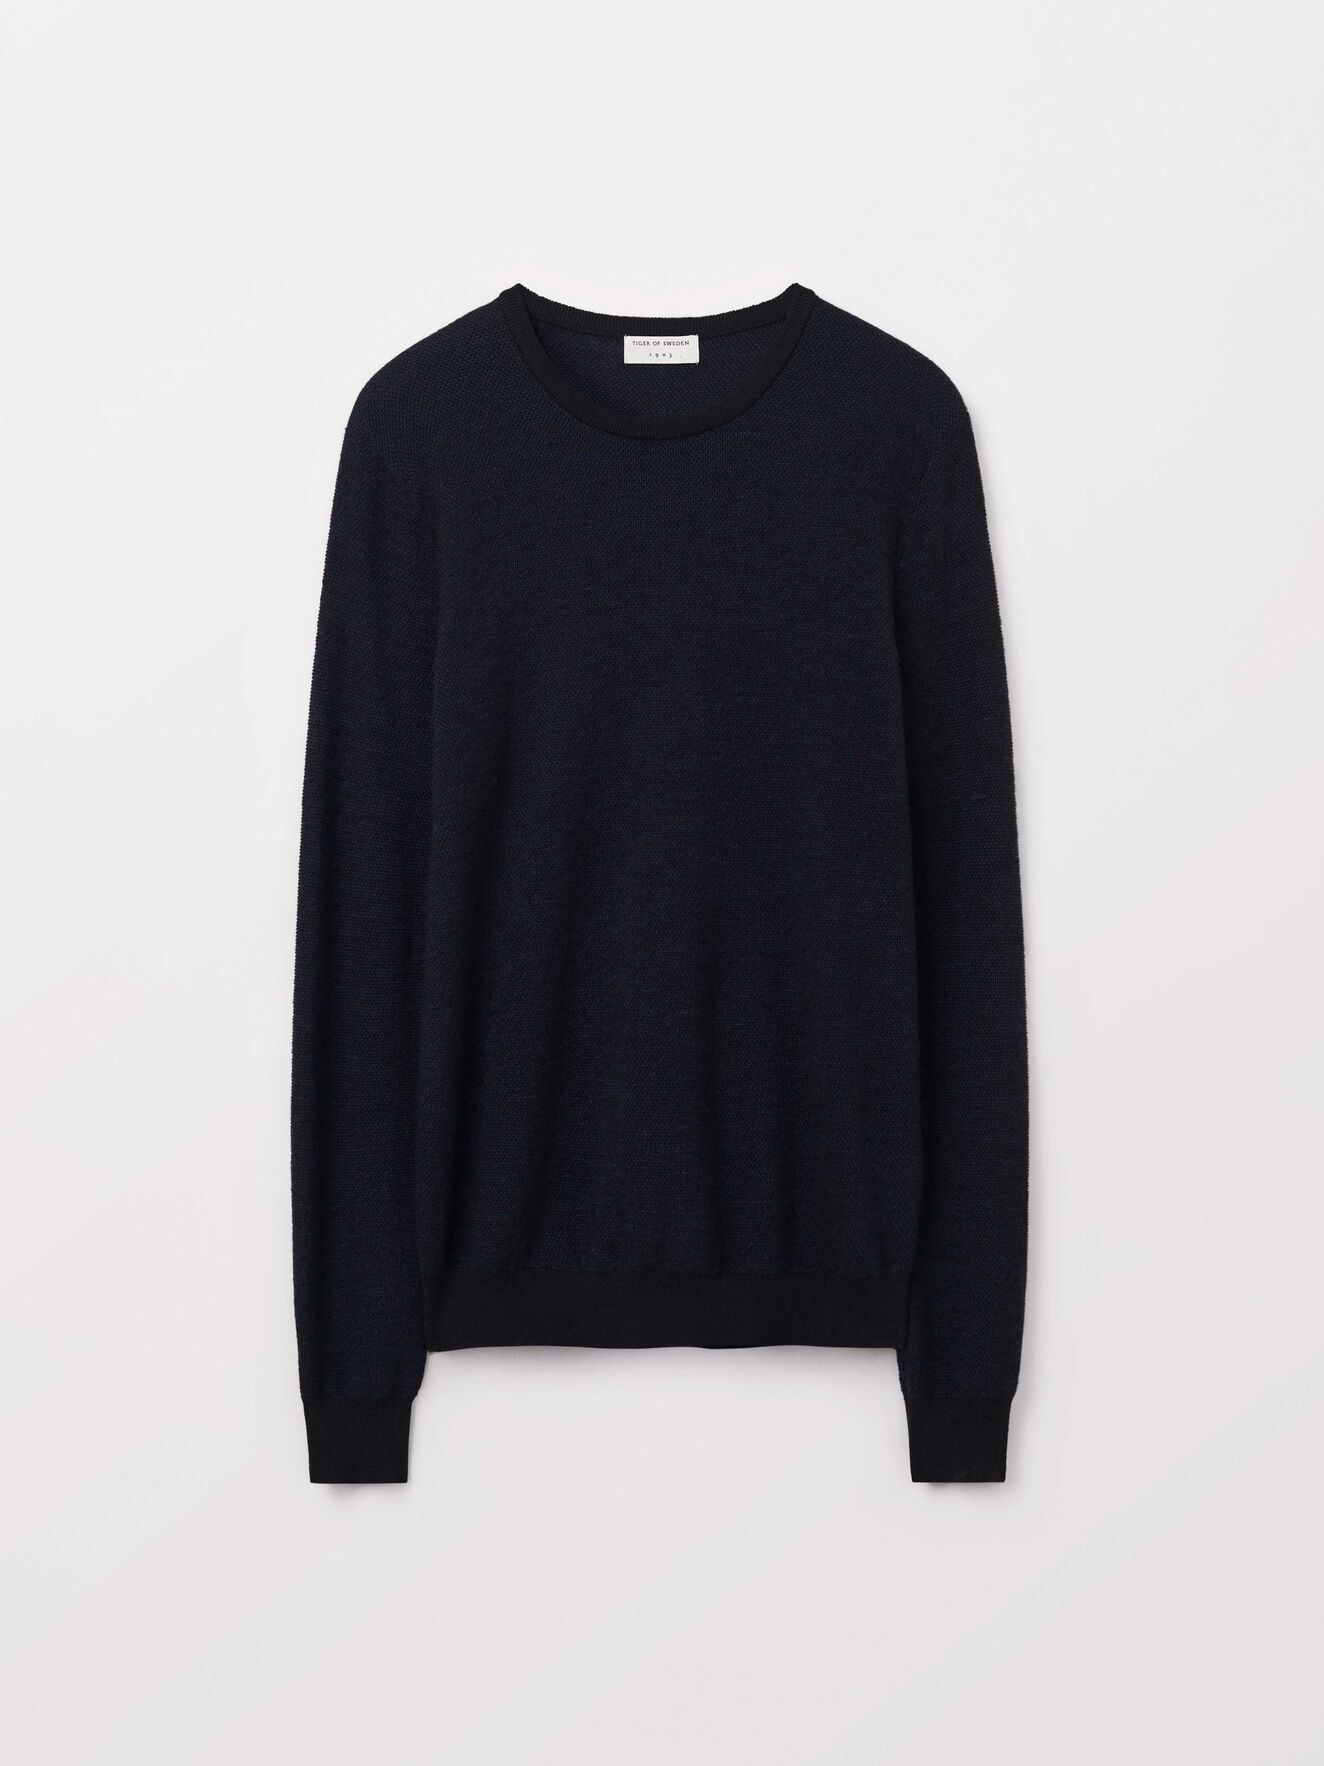 Nimpy Pullover in Black from Tiger of Sweden